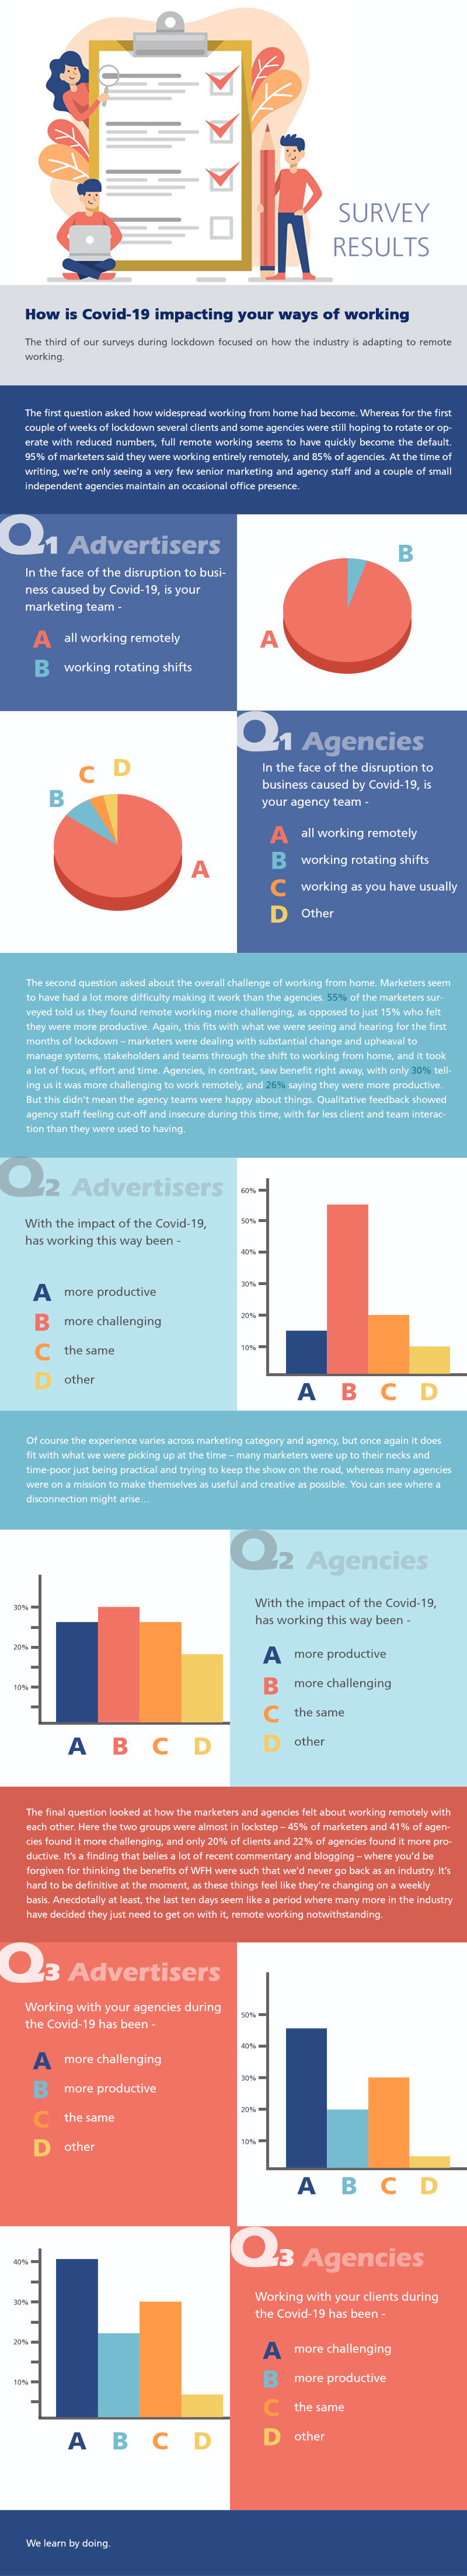 survey results - How Is COVID-19 Impacting Your Ways Of Working - infographics